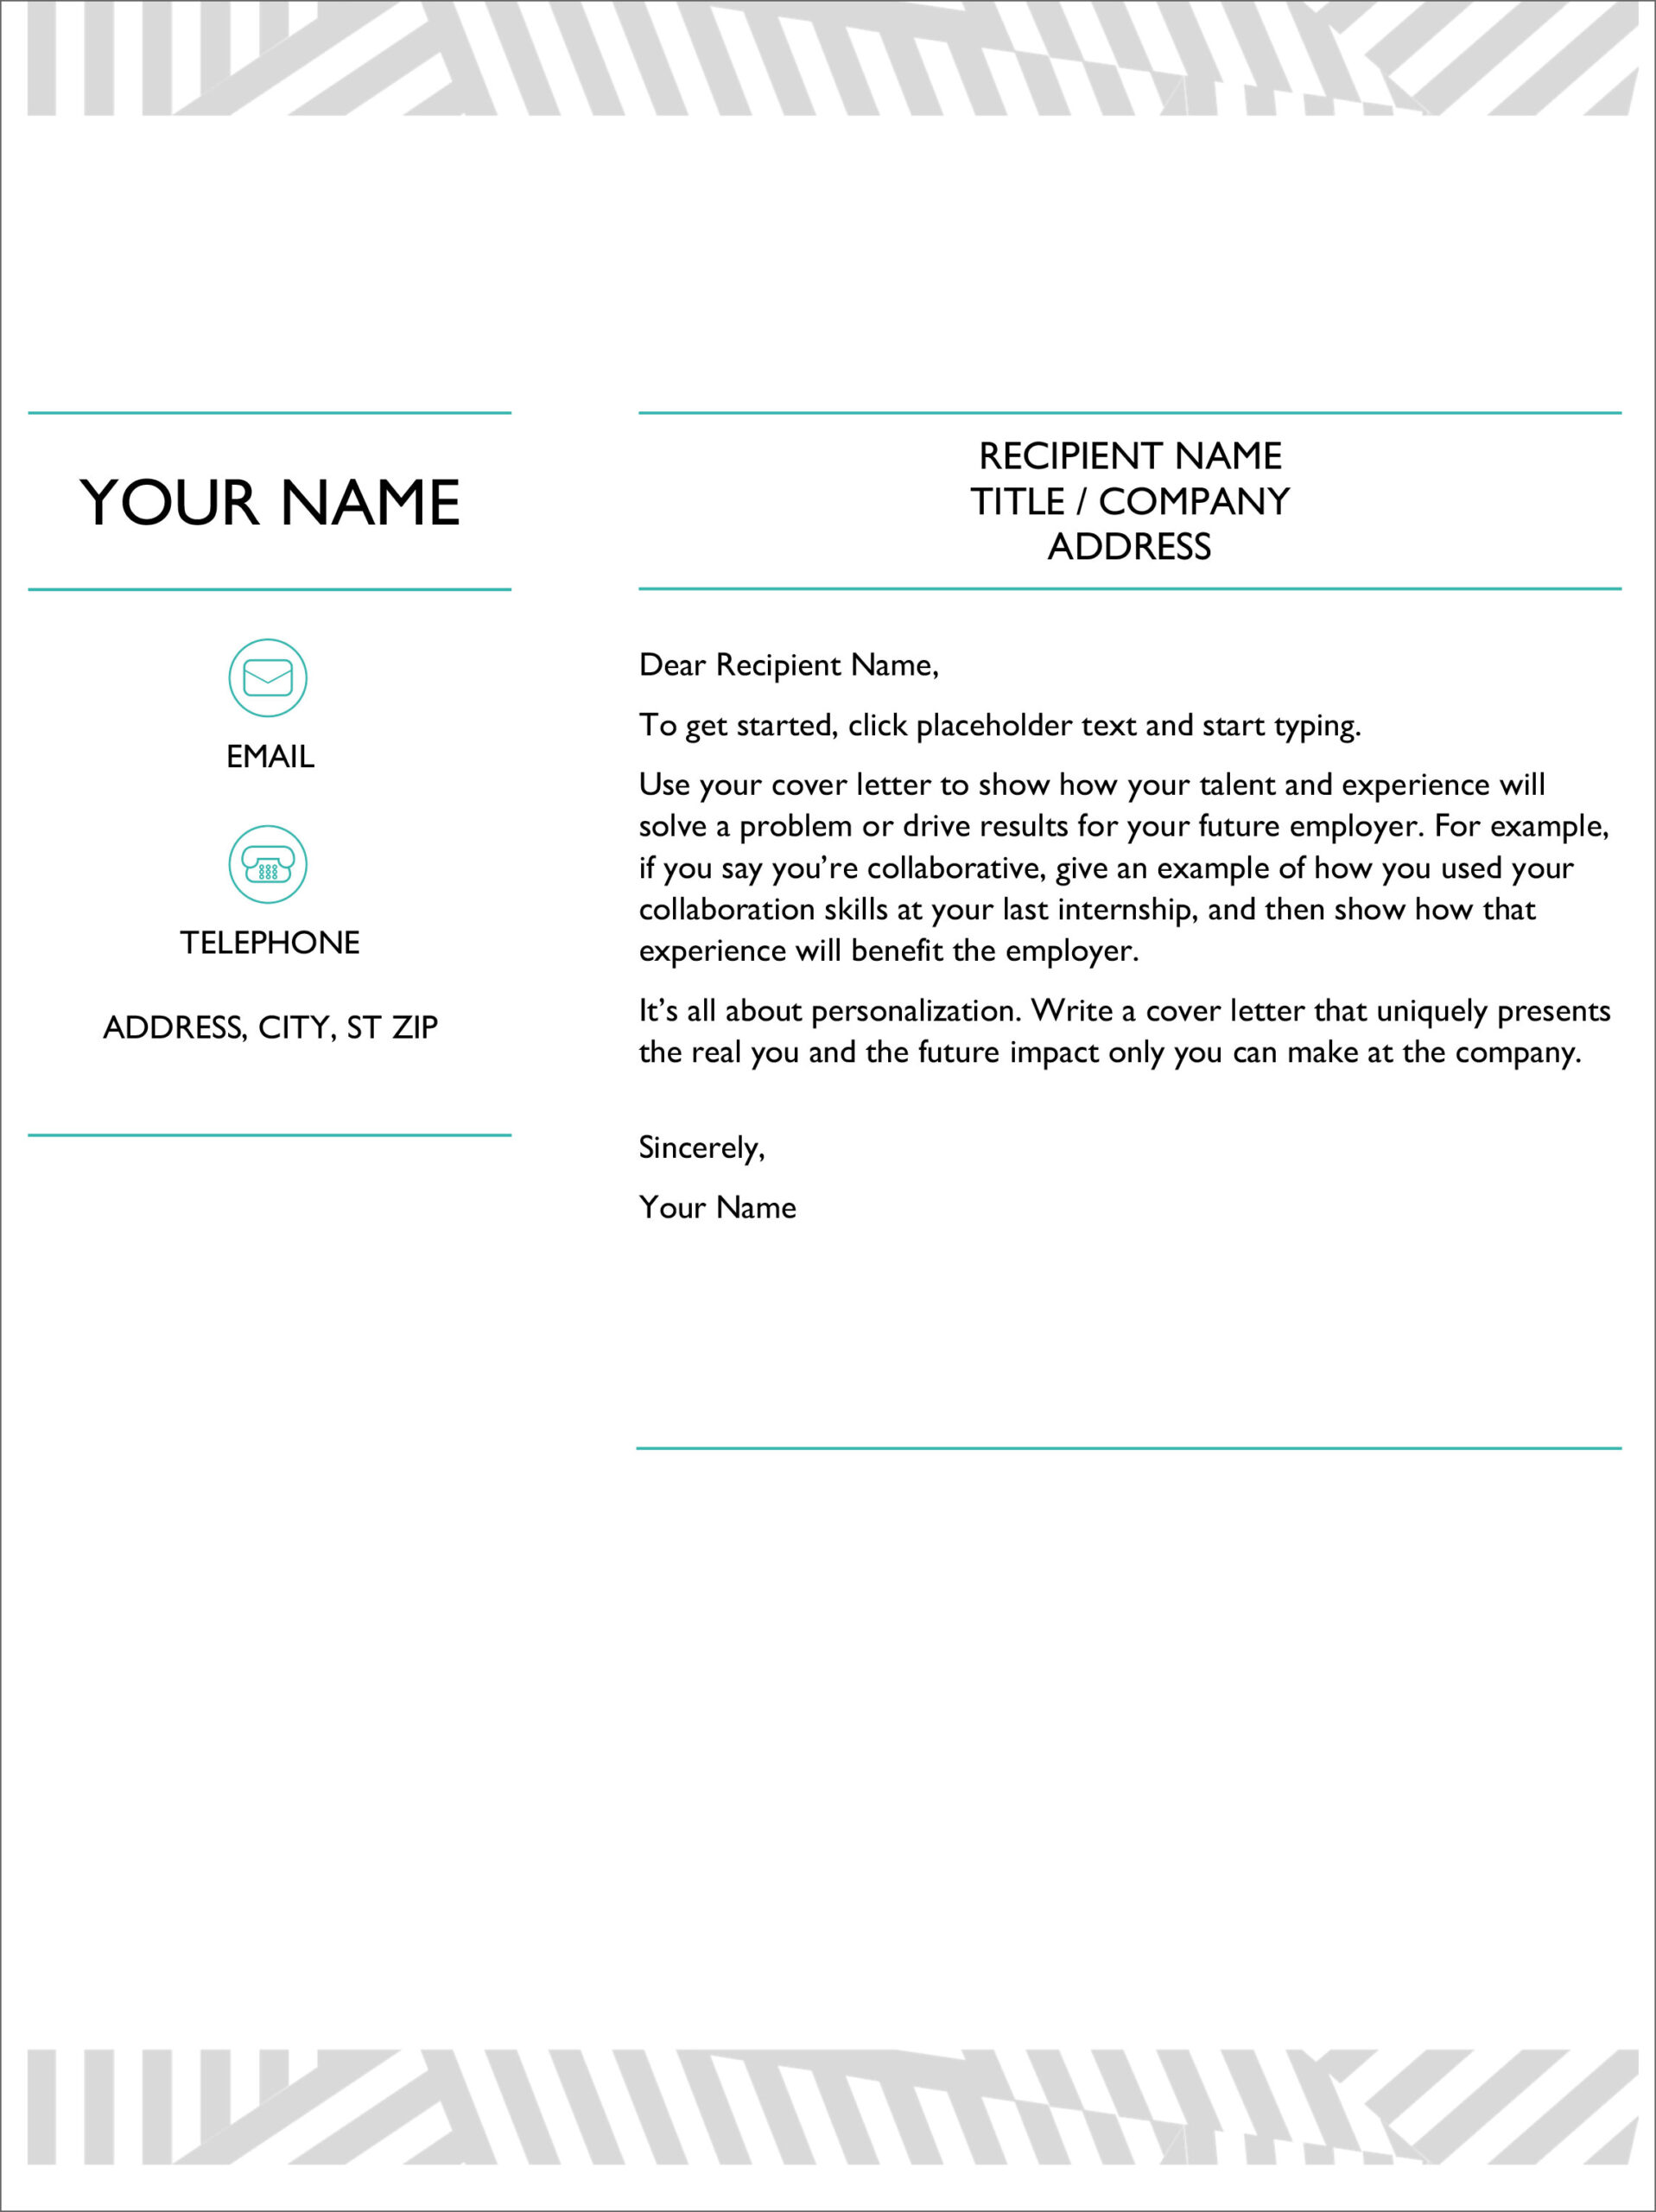 free cover letter templates for microsoft word and google docs resume template career Resume Cover Letter And Resume Template Google Docs